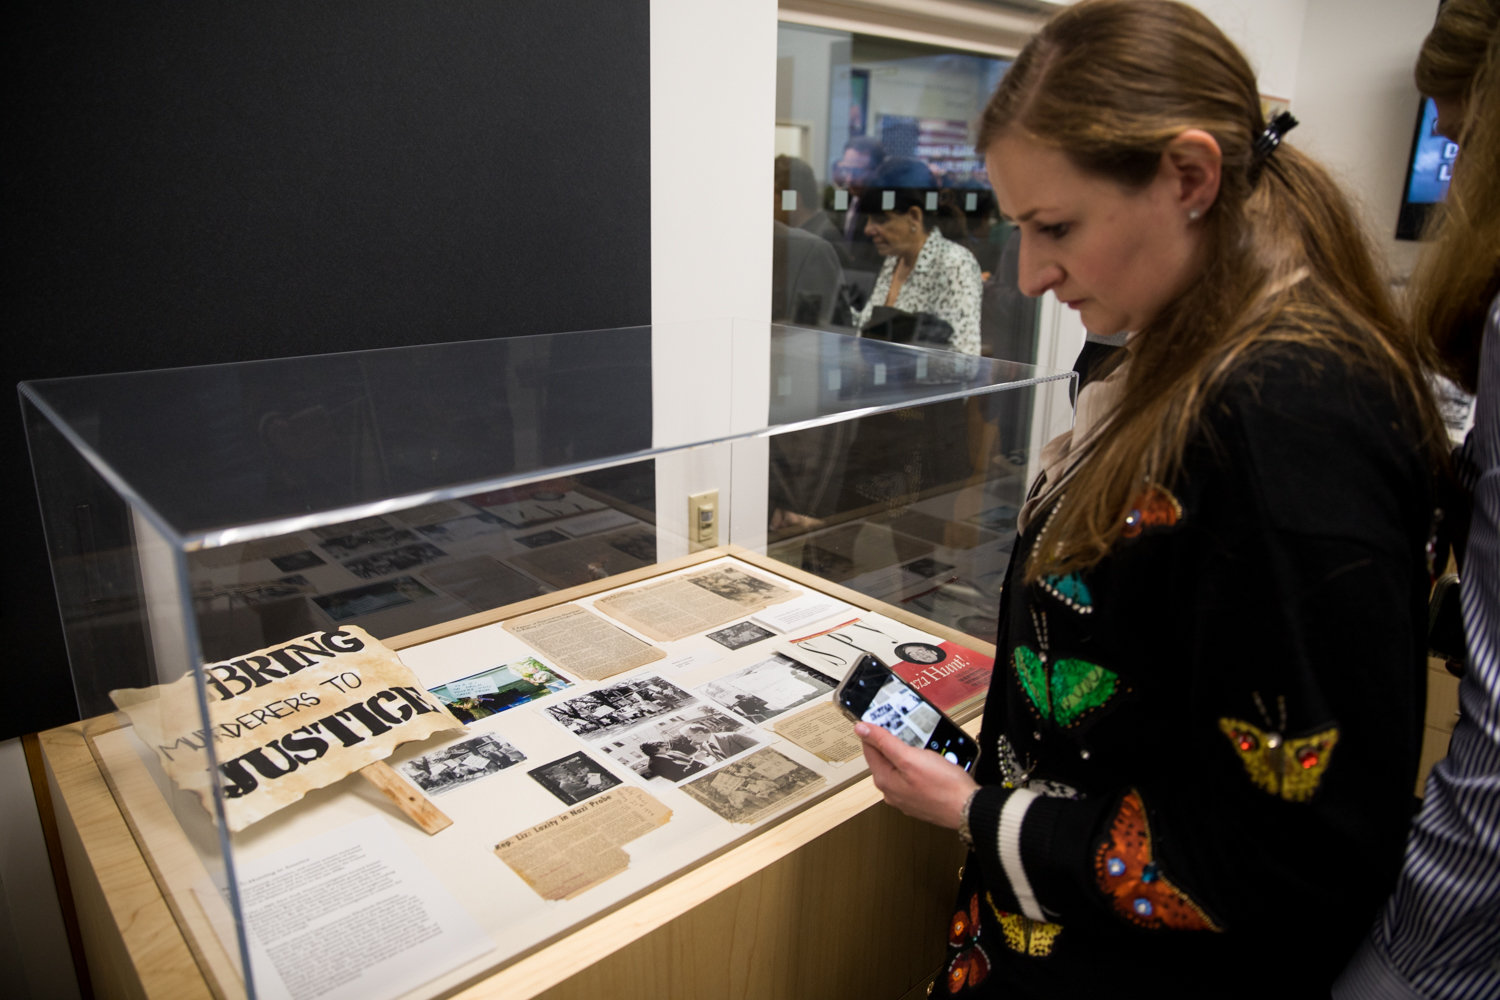 Visitors look at articles and signs protesting Boleslavs Maikovskis at the Herman and Lea Ziering Archive Collection.